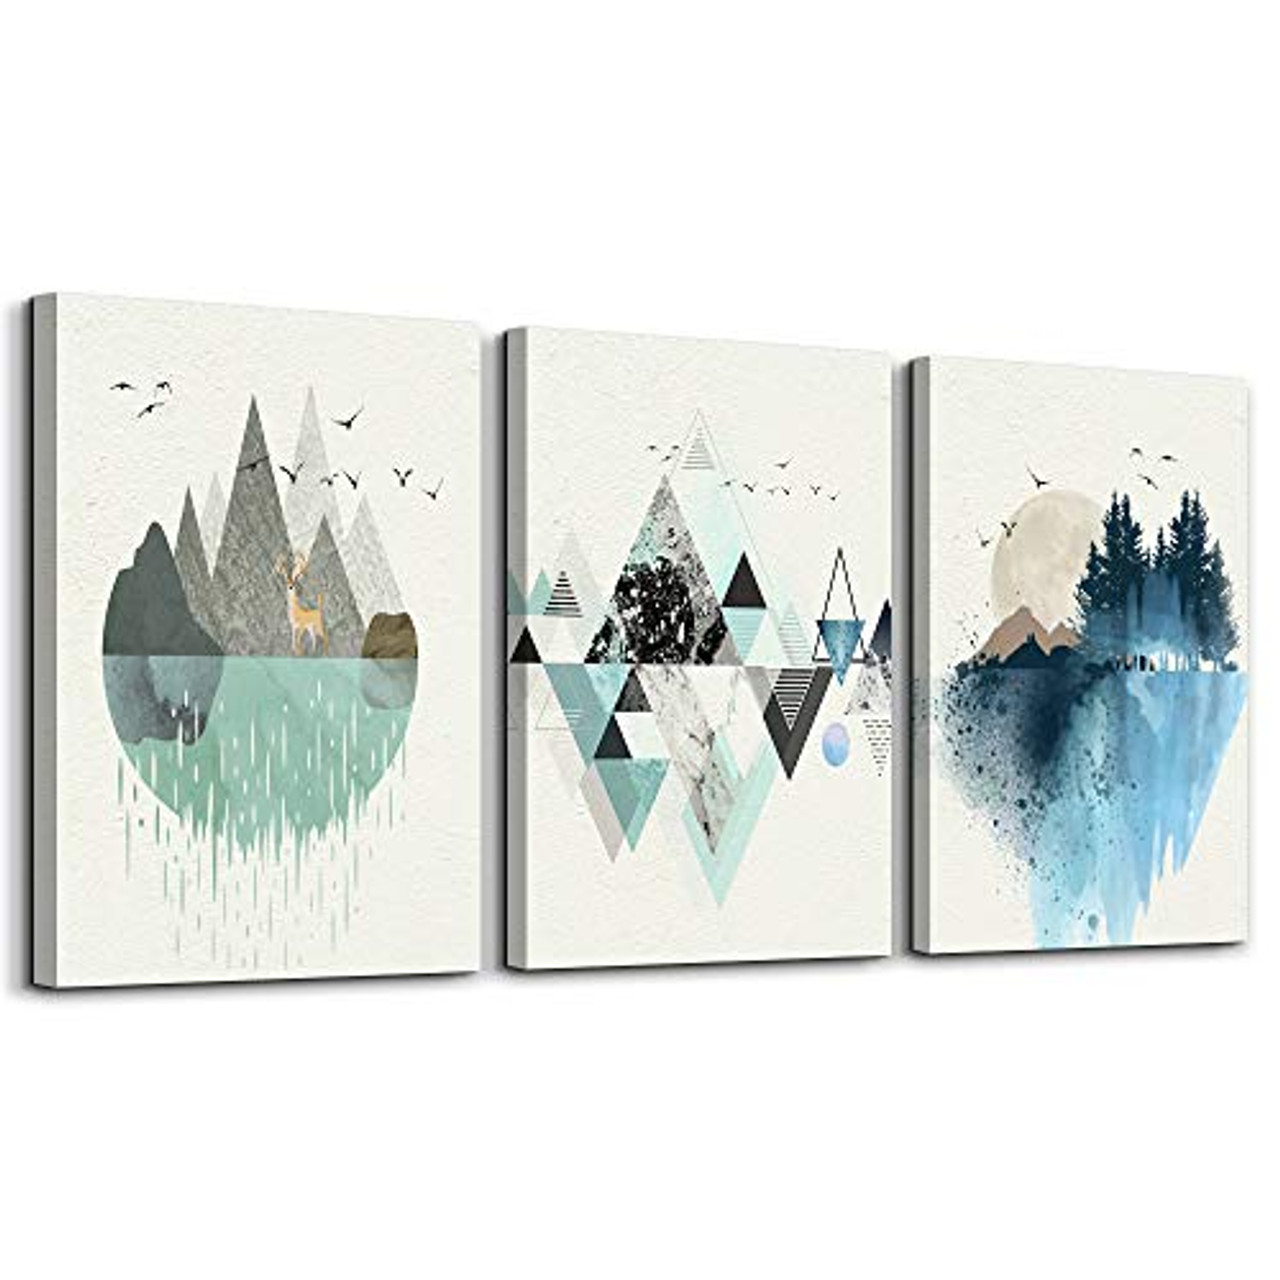 Abstract Mountain in Daytime Canvas Prints Wall Art Paintings Abstract  Geometry Wall Artworks Pictures for Living Room Bedroom Decoration, 12x16  ...